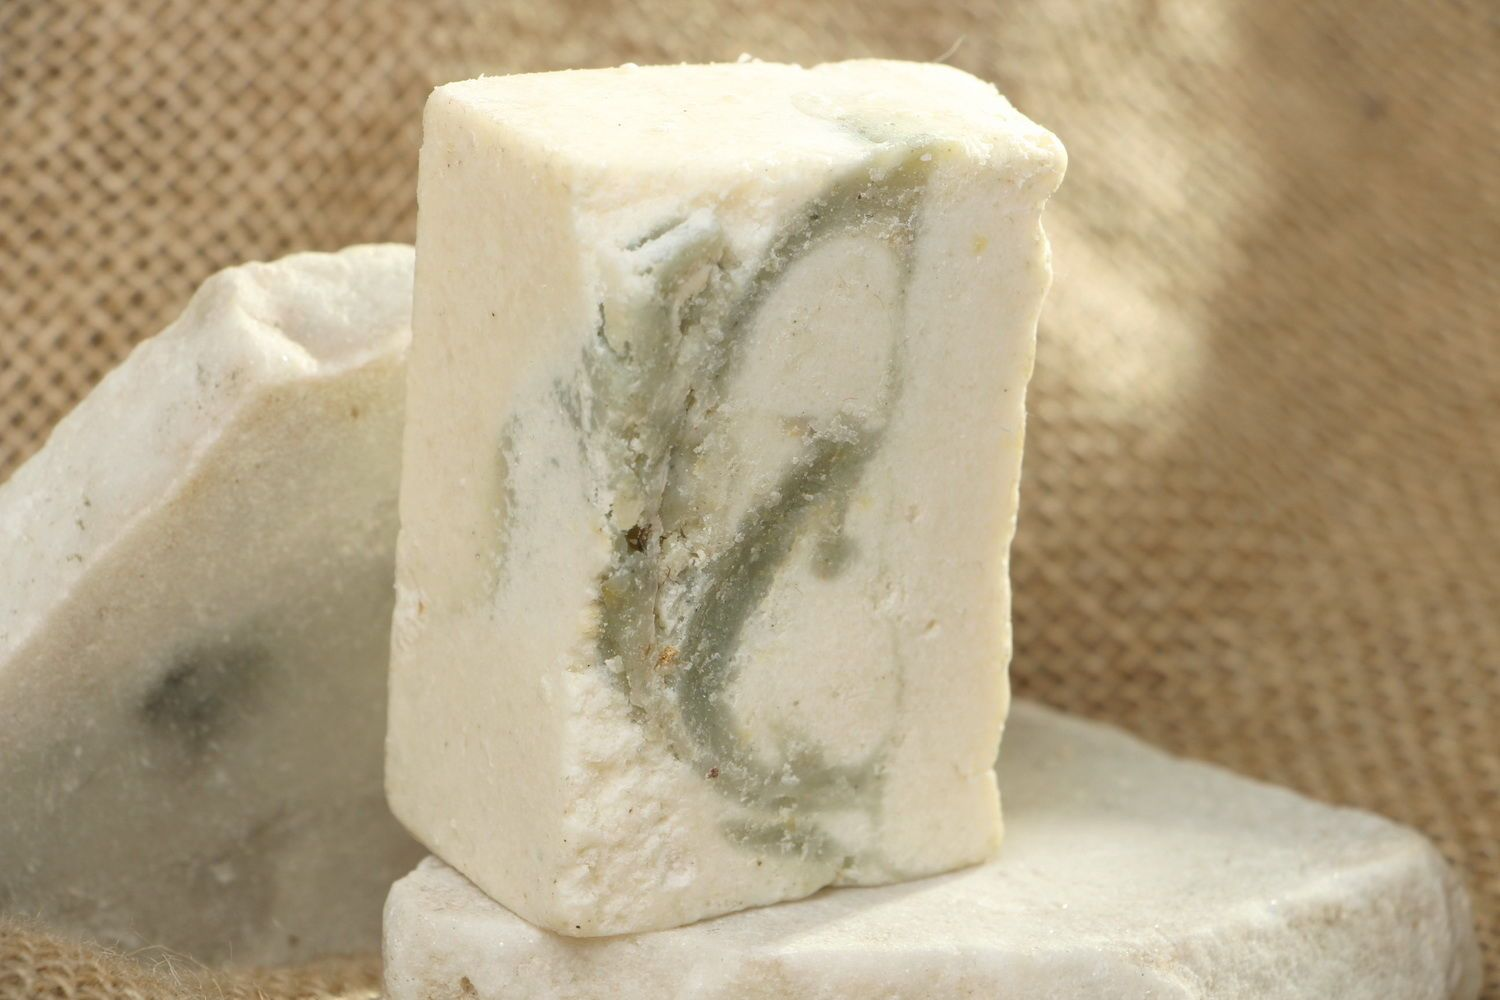 Handmade soap with salt and clay photo 1